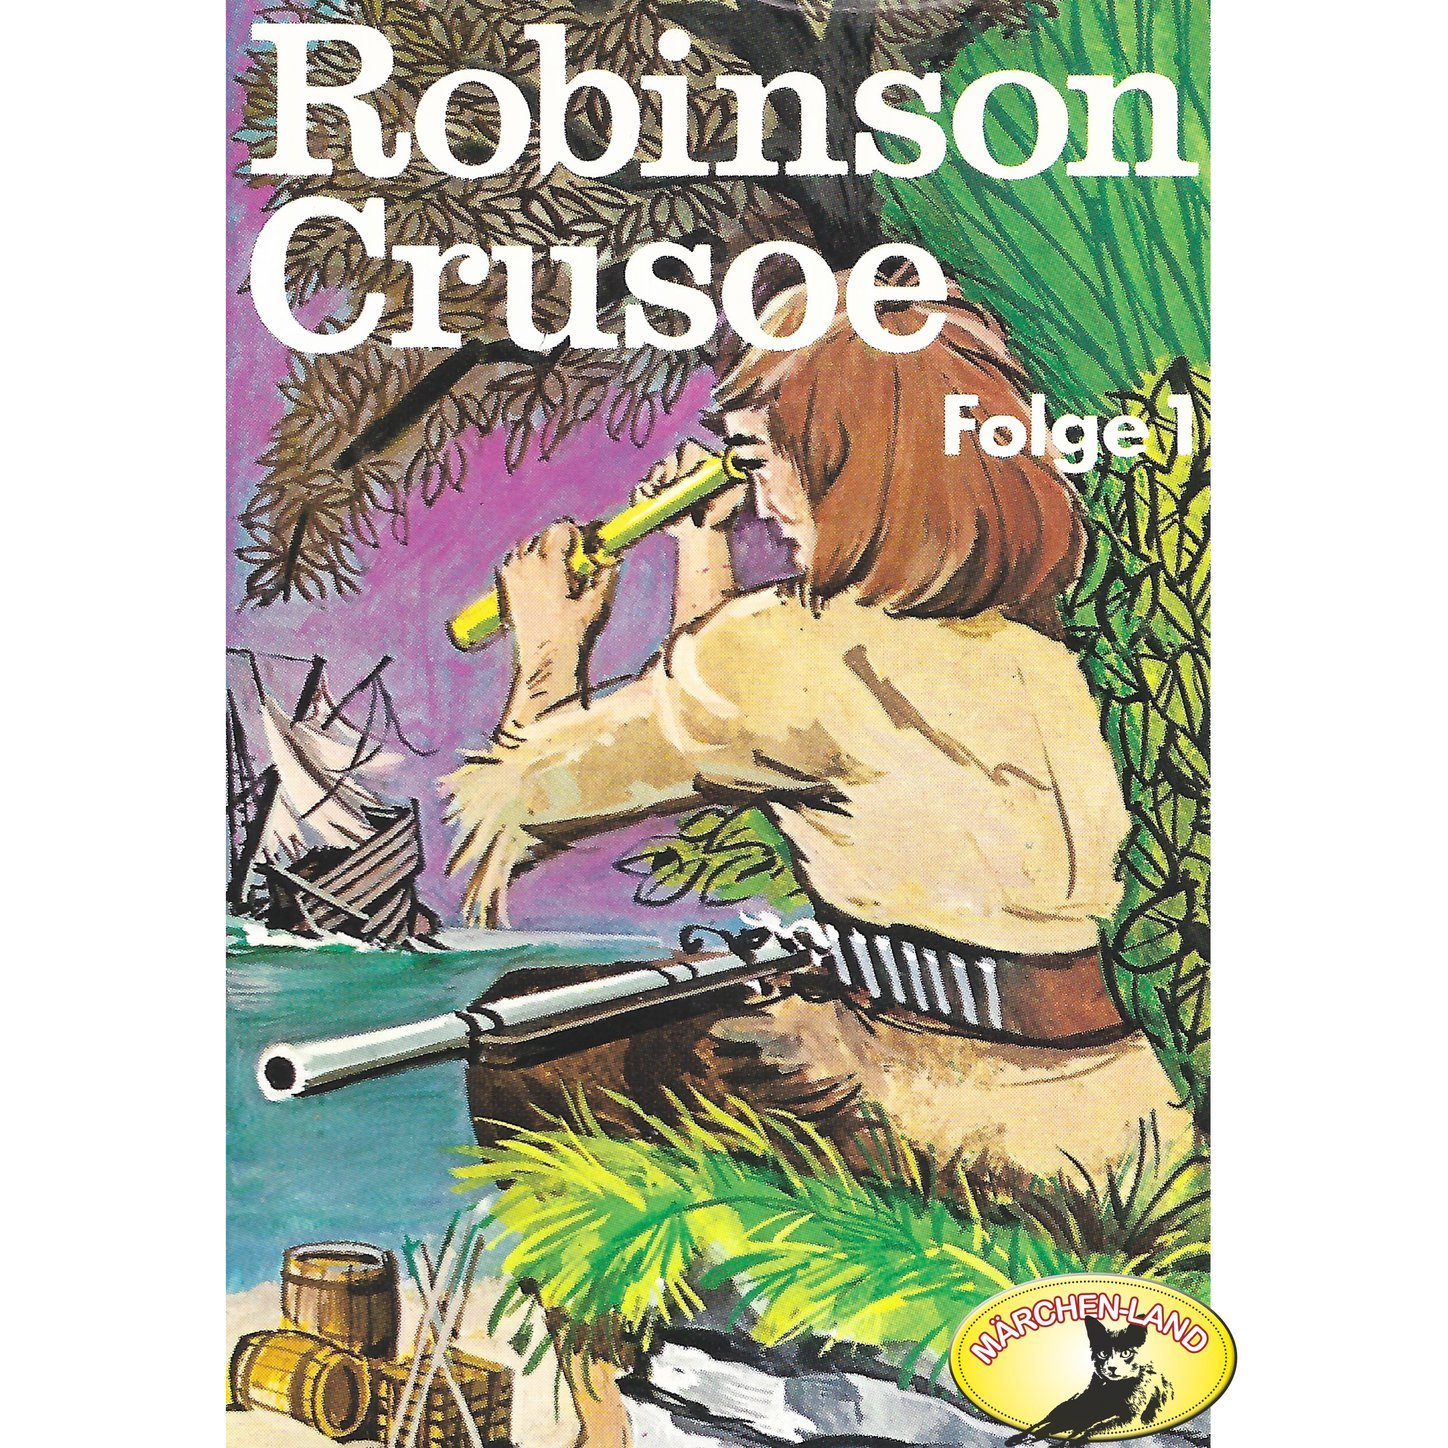 Daniel Defoe Robinson Crusoe - Daniel Defoe, Folge 1: Robinson Crusoe daniel defoe the life and aventures of robinson crusoe to which is prefixed a biographical memoir of daniel de foe volume 3